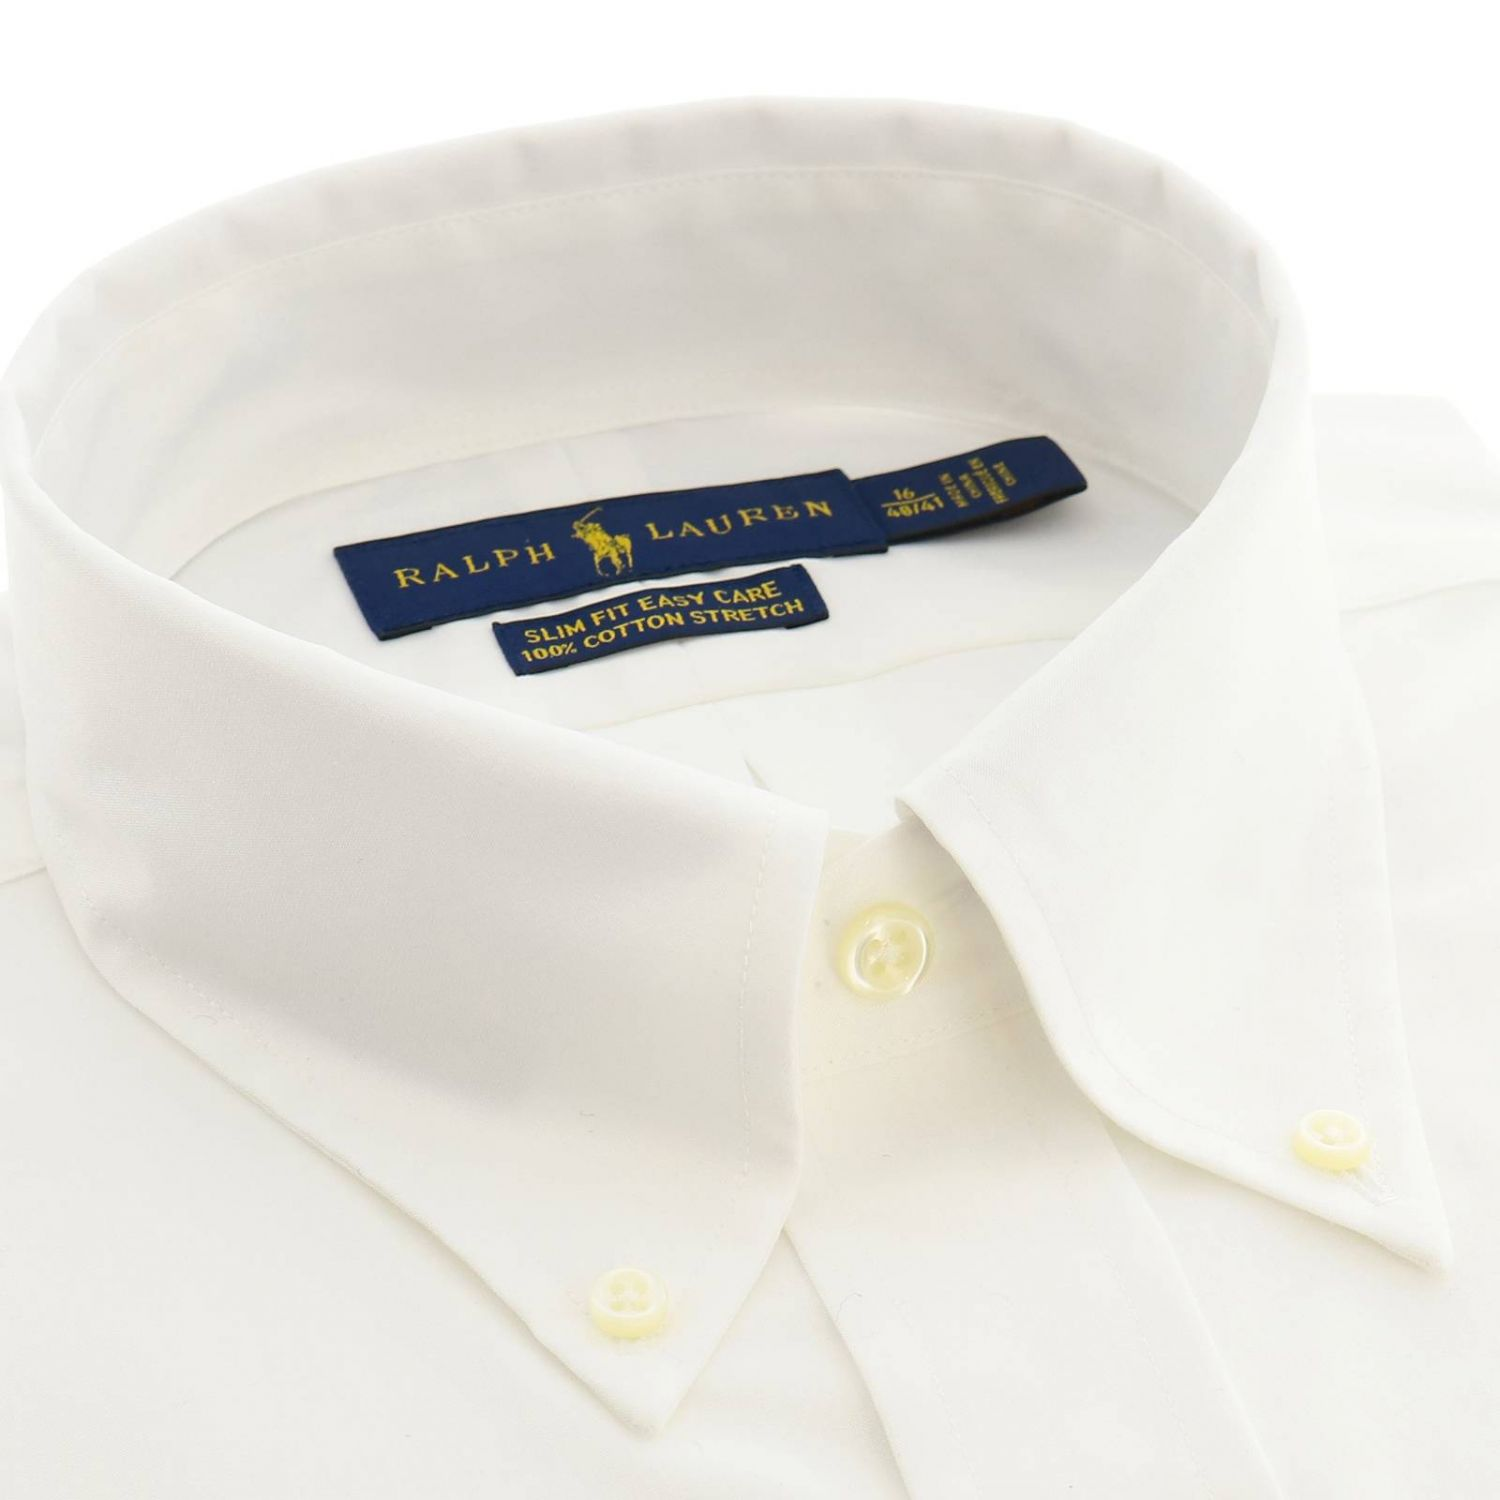 Easy care slim fit shirt with button down collar and Polo Ralph Lauren logo white 2